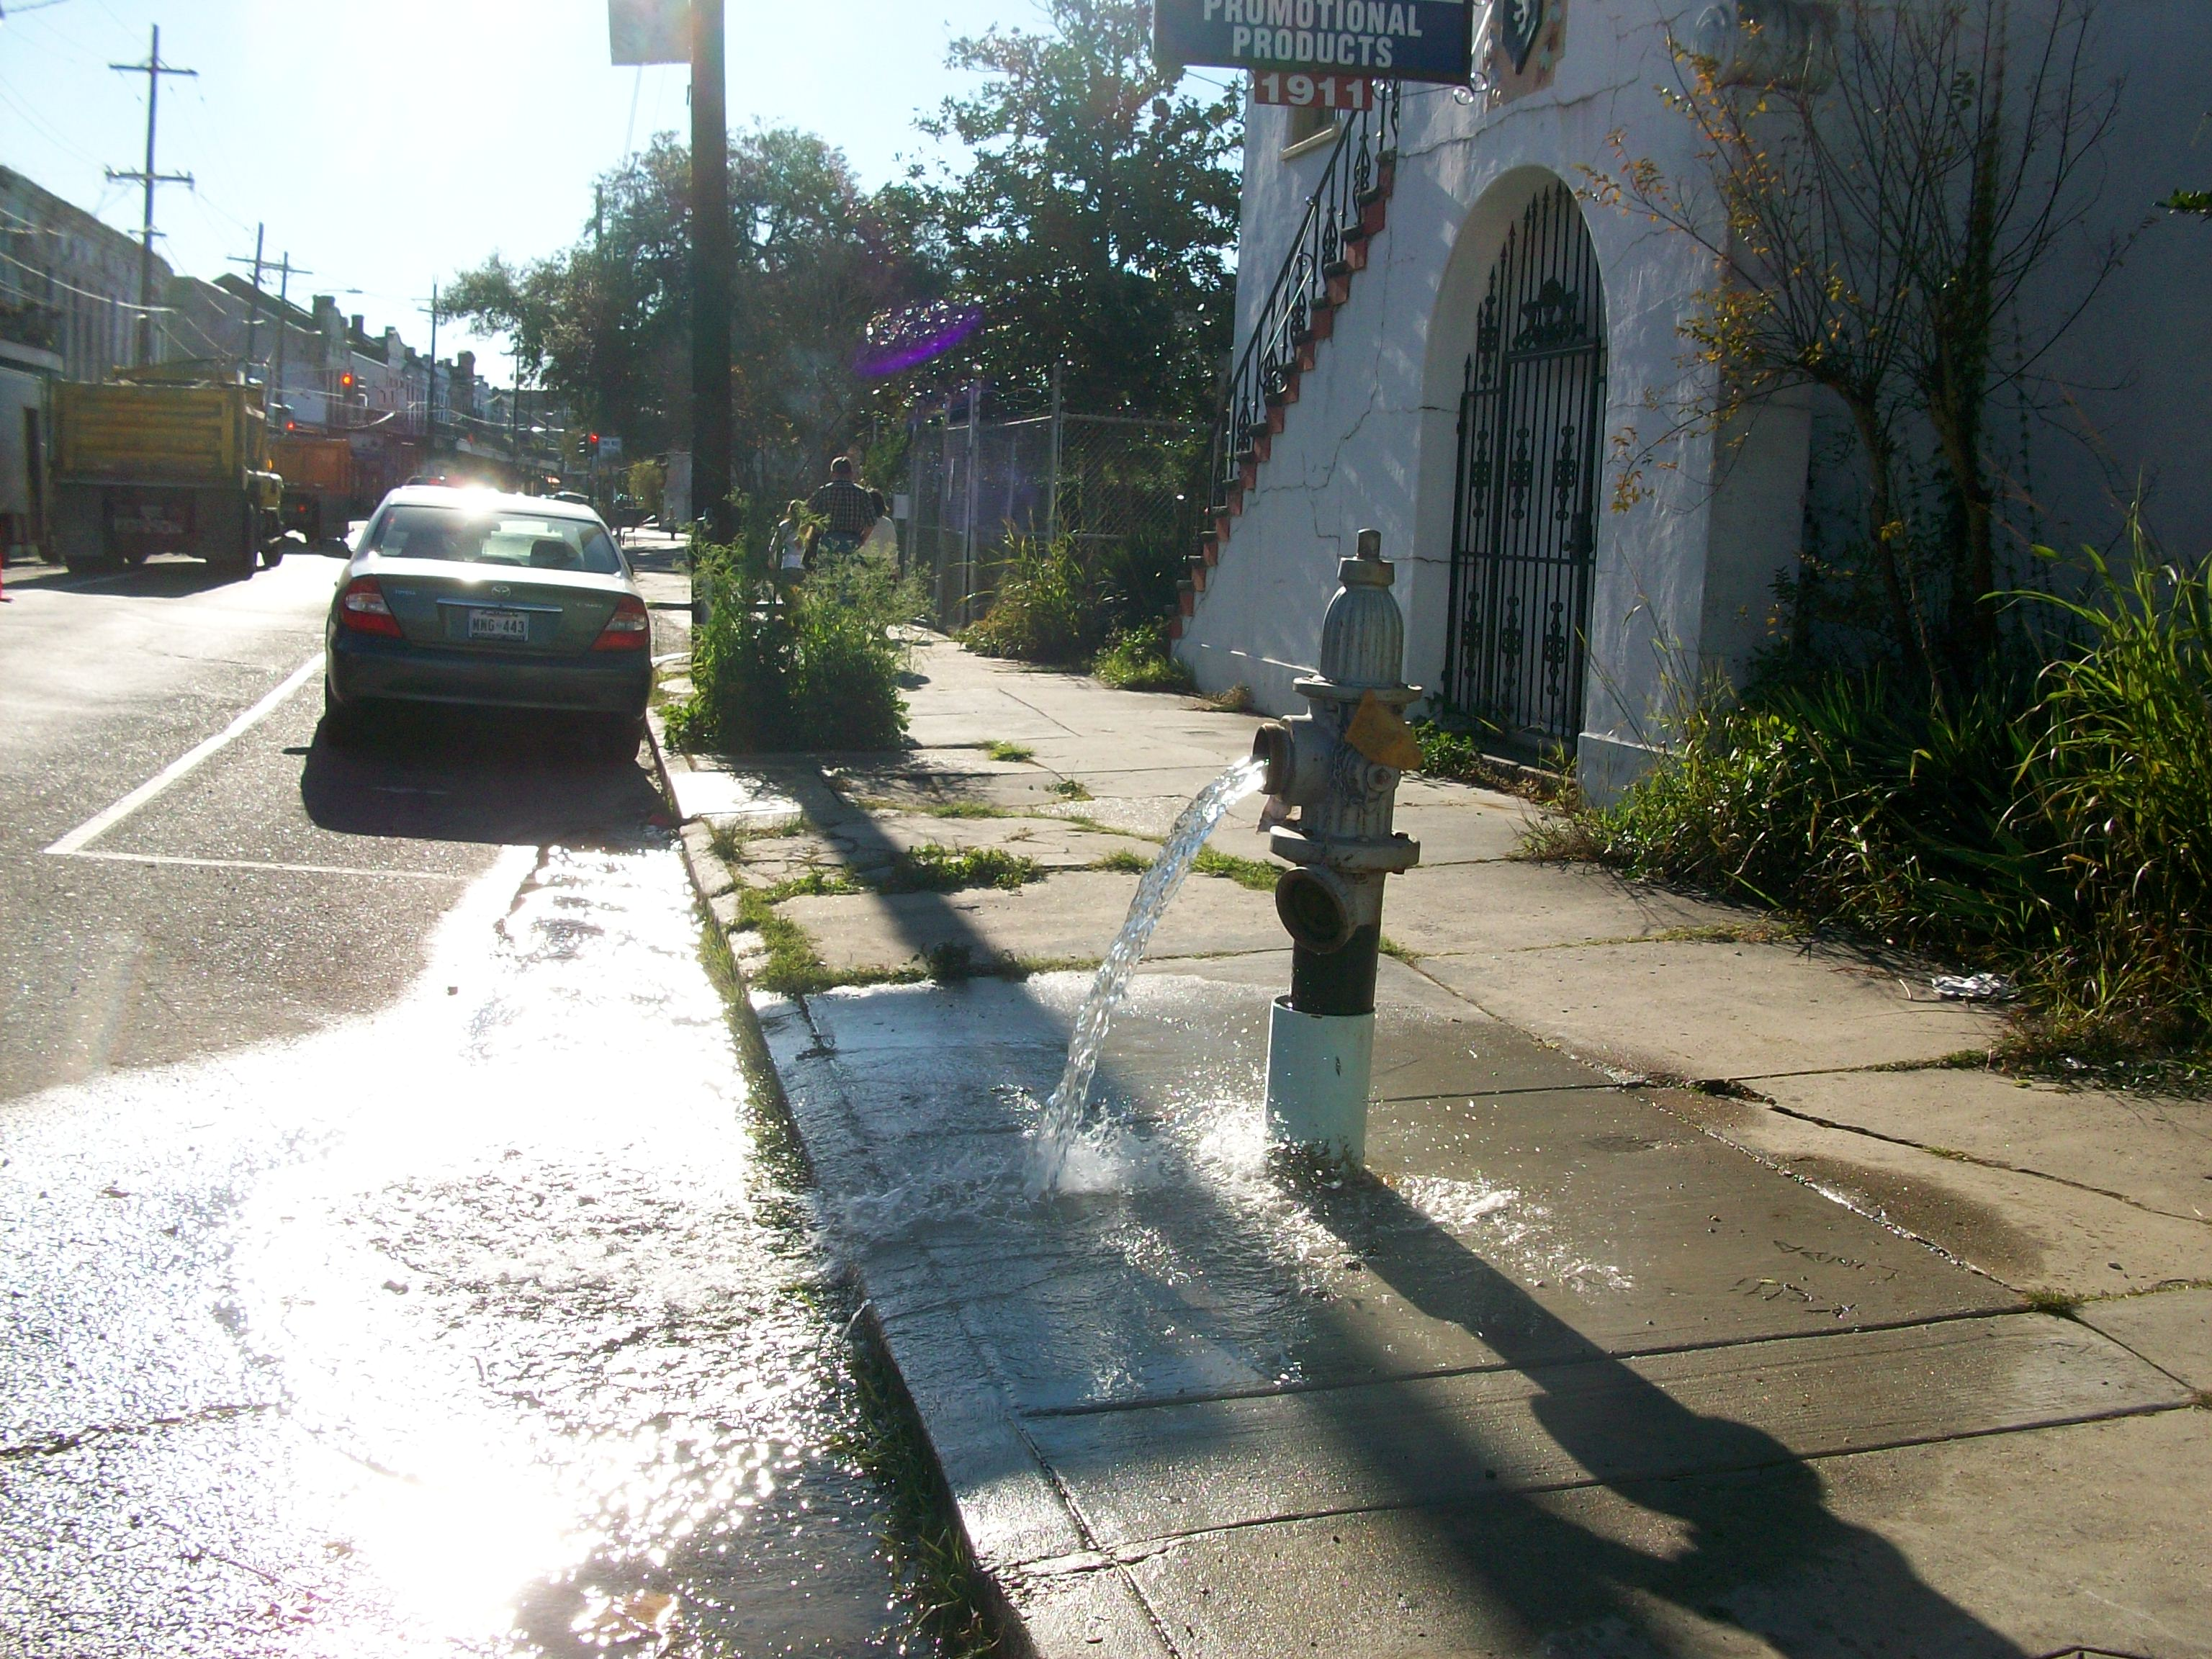 Fire Hydrant at St. Mary's and Magazine